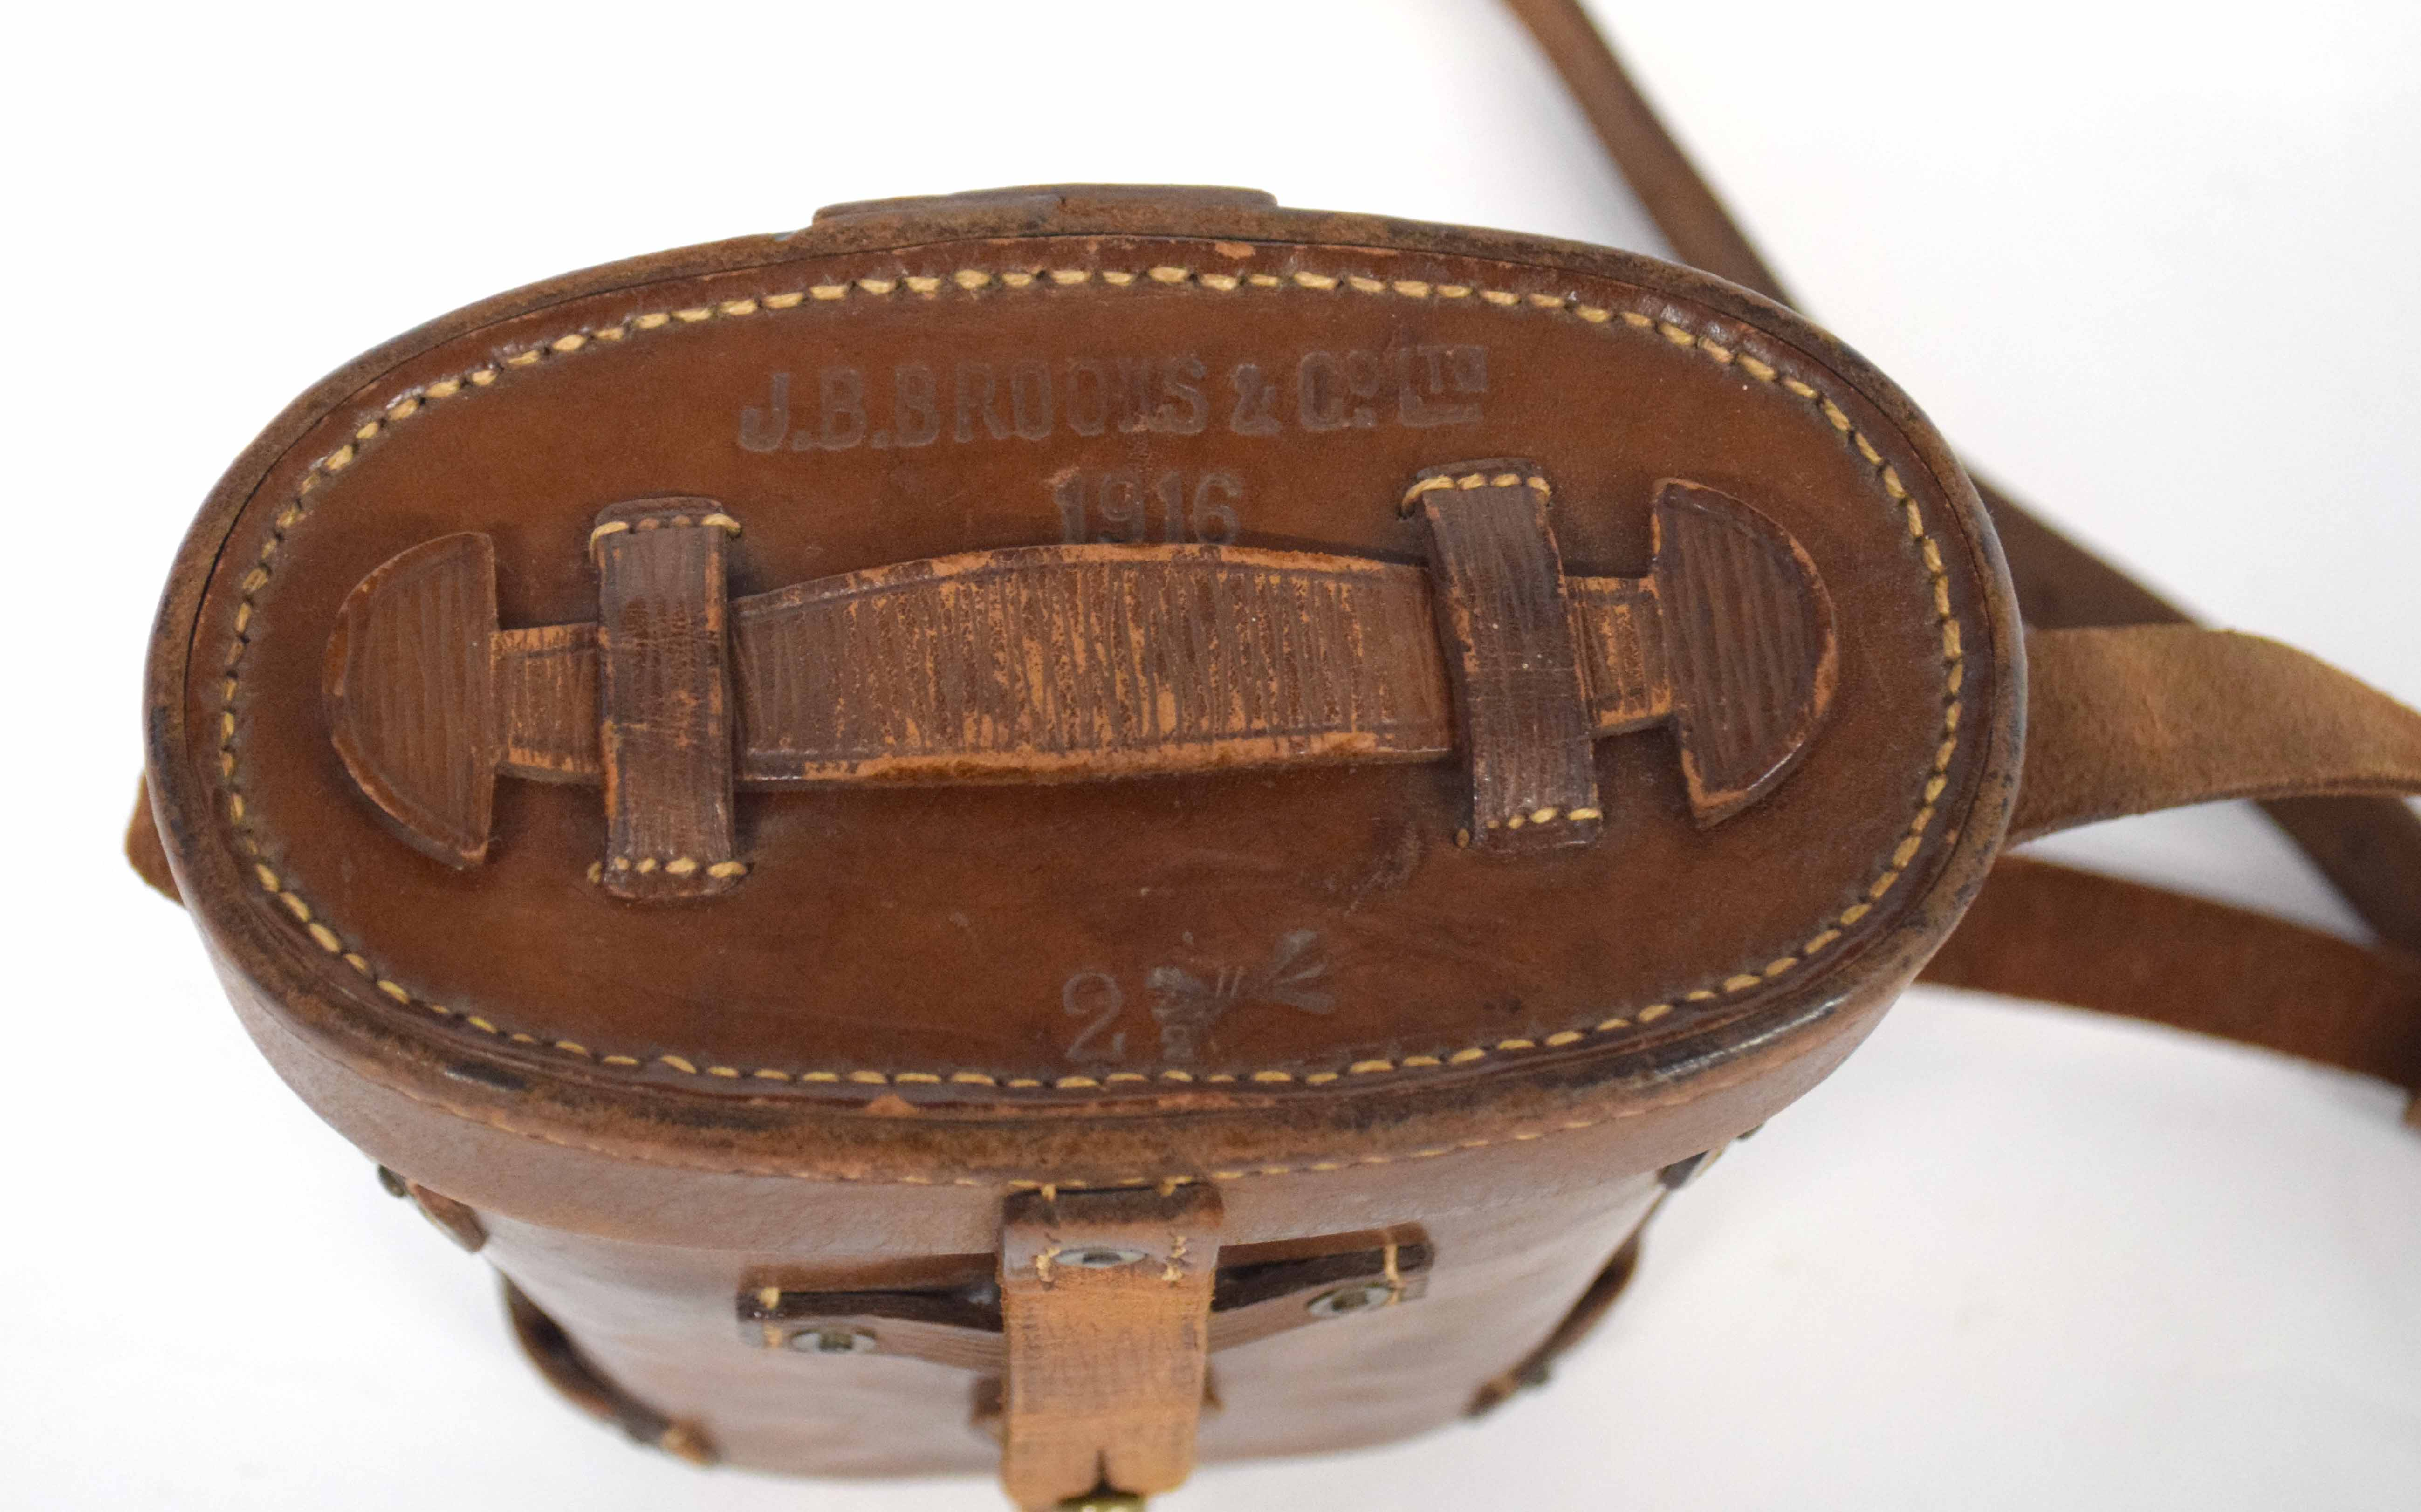 Pair of cased early 20th century British Military MK 5 binoculars stamped with War Dept Govt issue - Image 2 of 4